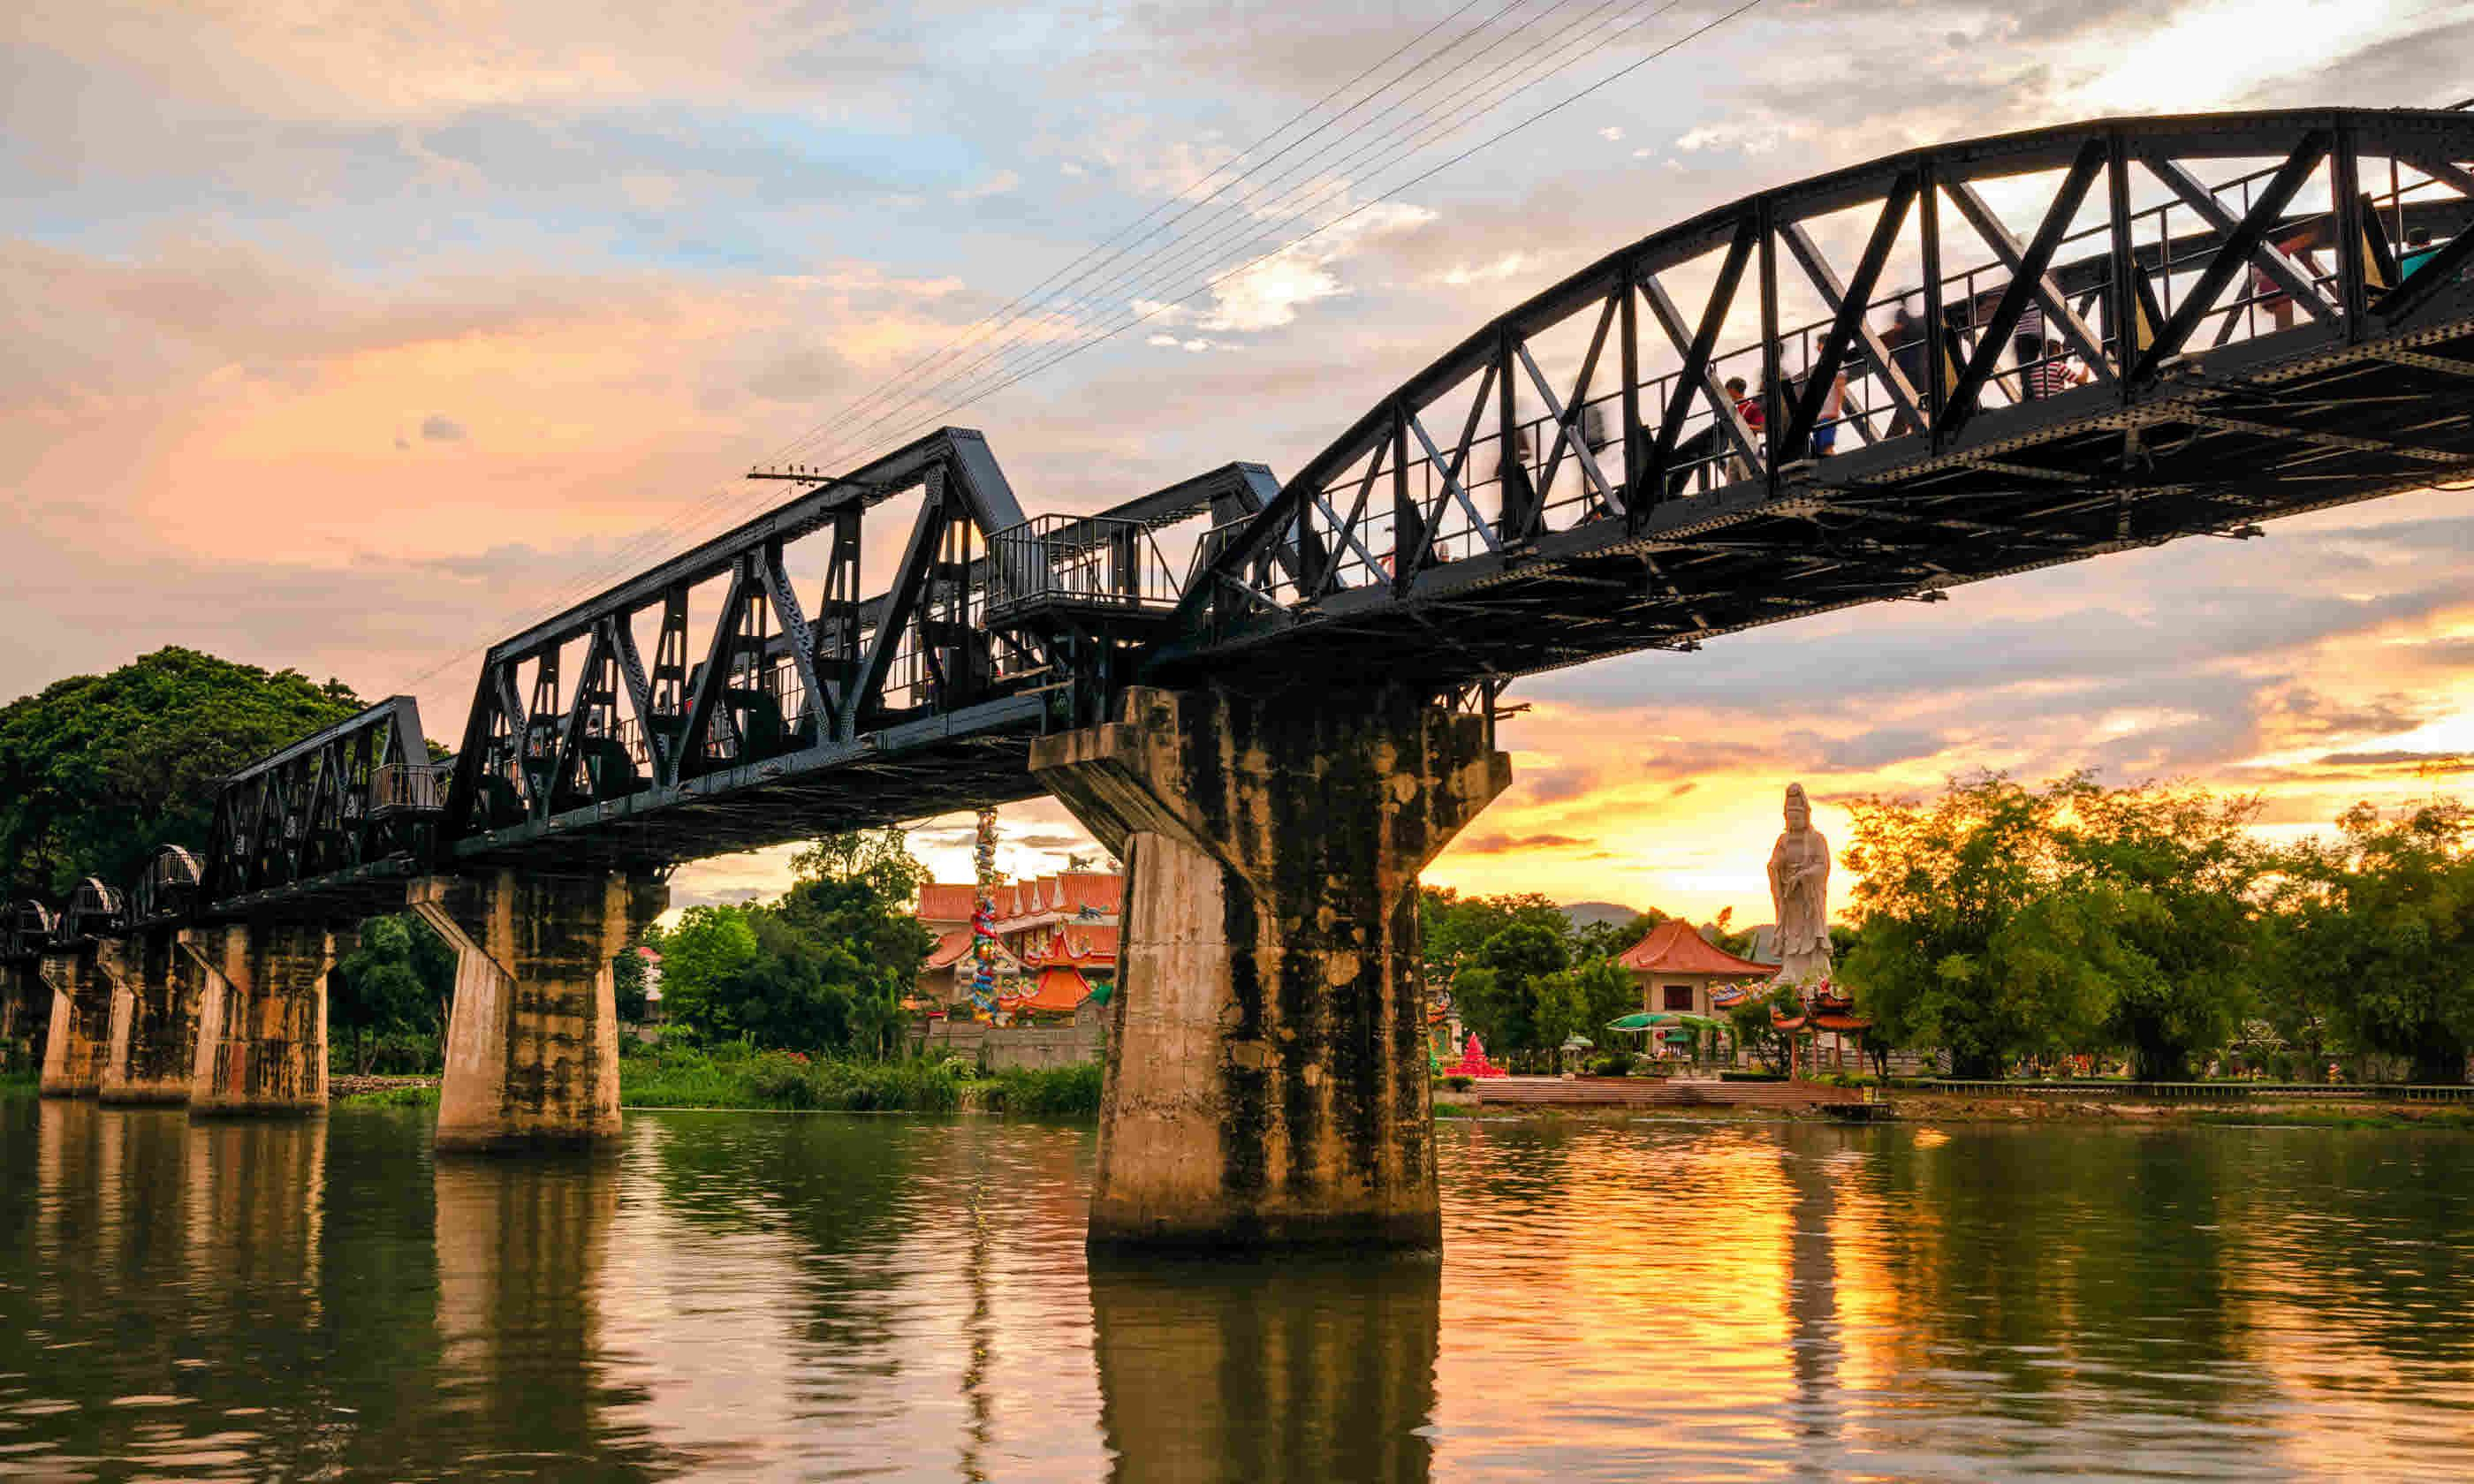 The bridge over the River Kwai, Thailand (Shutterstock)